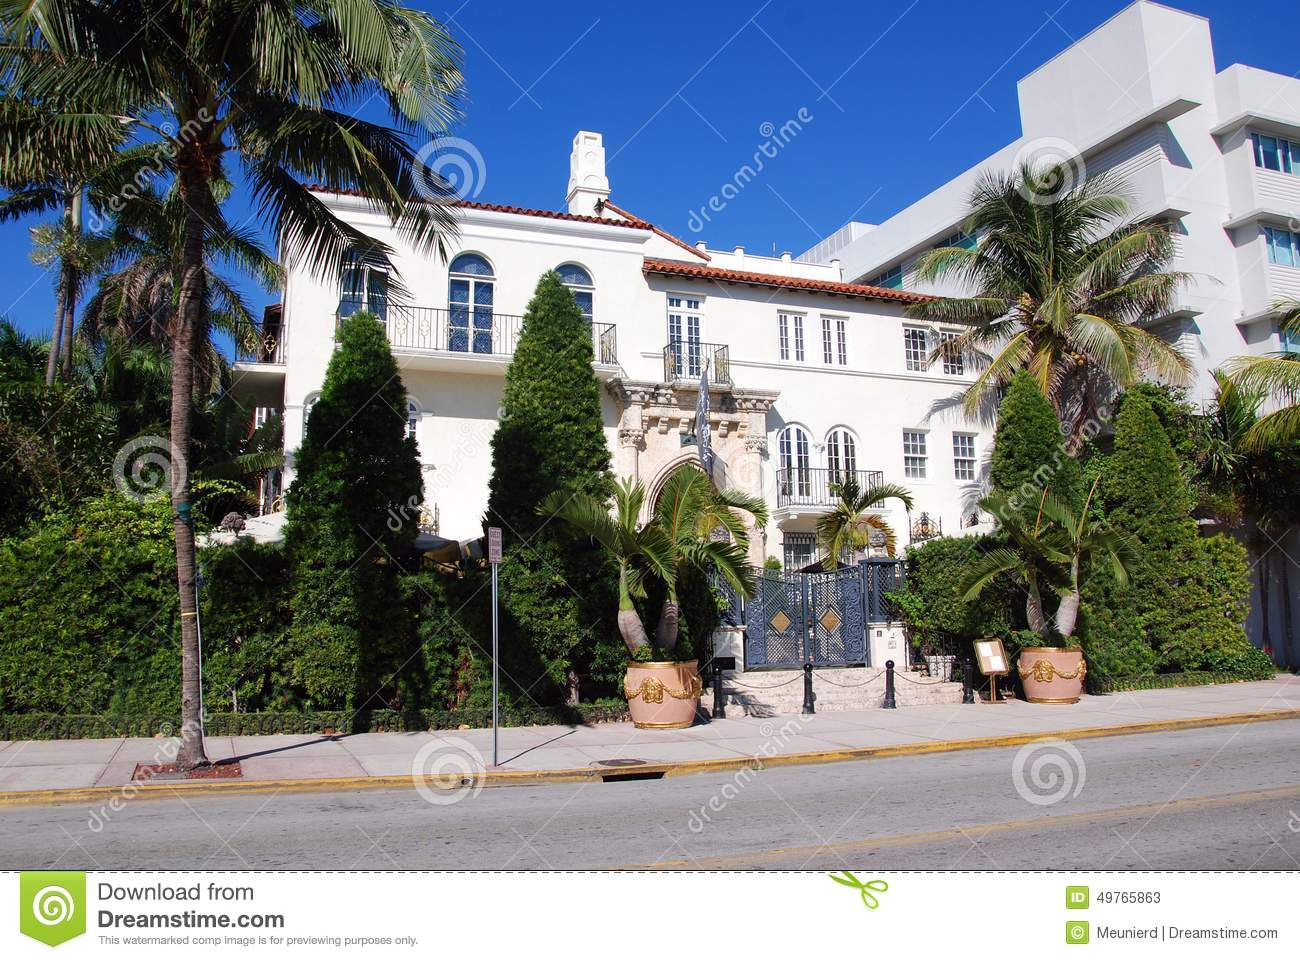 Editorial Stock Photo Versace Mansion Miami Florida Usa October World Gasped As Gianni Was Shot To Death Doorstep His Miami Image49765863 on florida mansion house plans